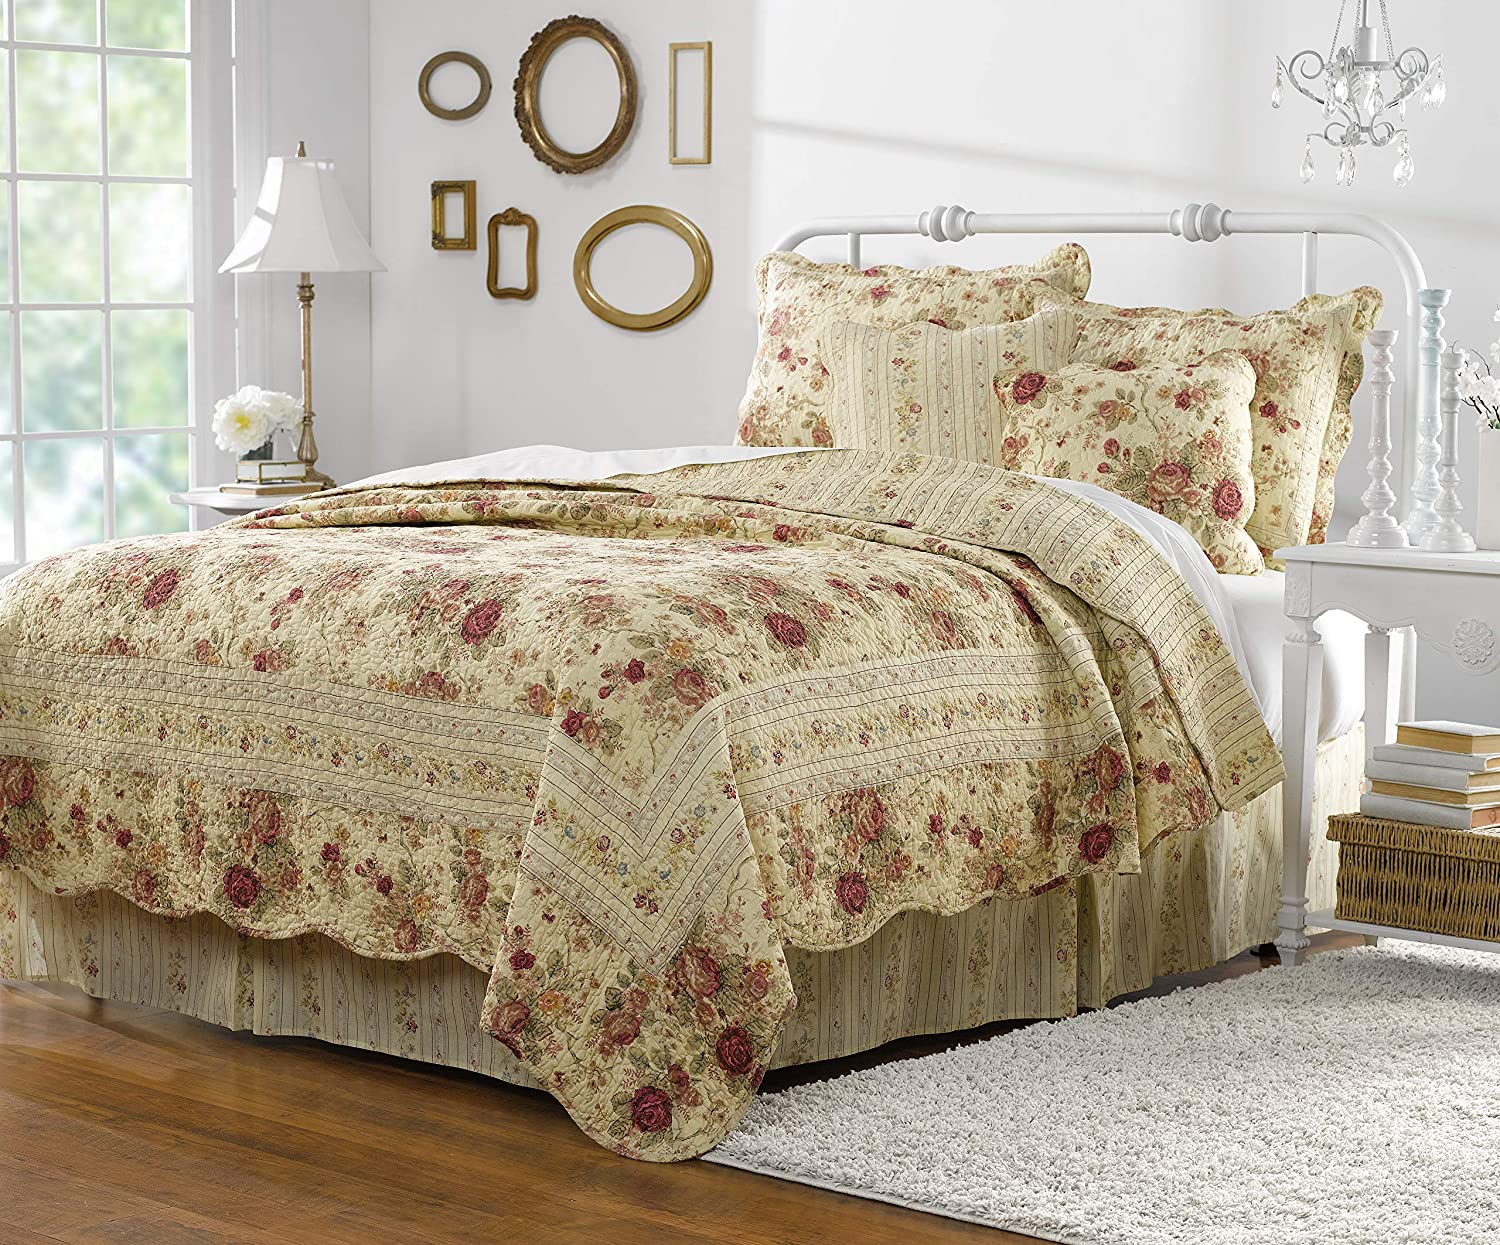 Greenland Home Antique Rose Quilt Set, 5-Piece Full/Queen, Multi